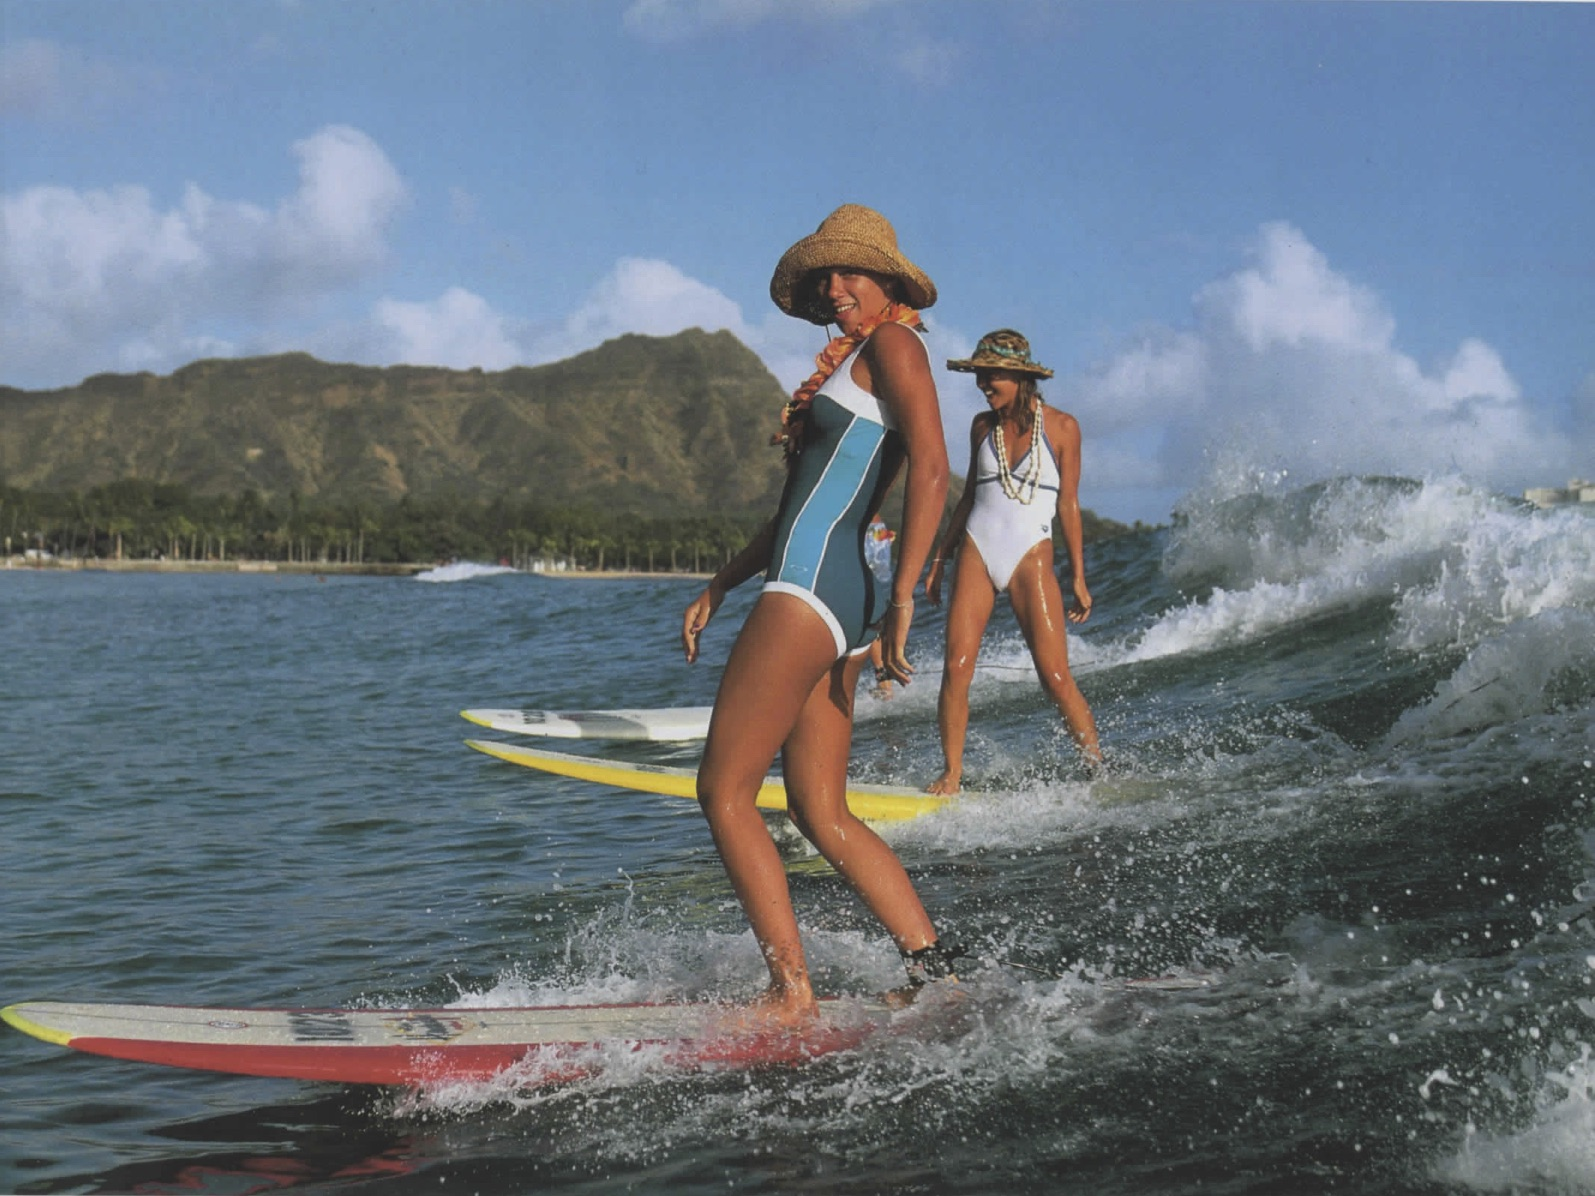 two cute surfer girls cruising on a wave together